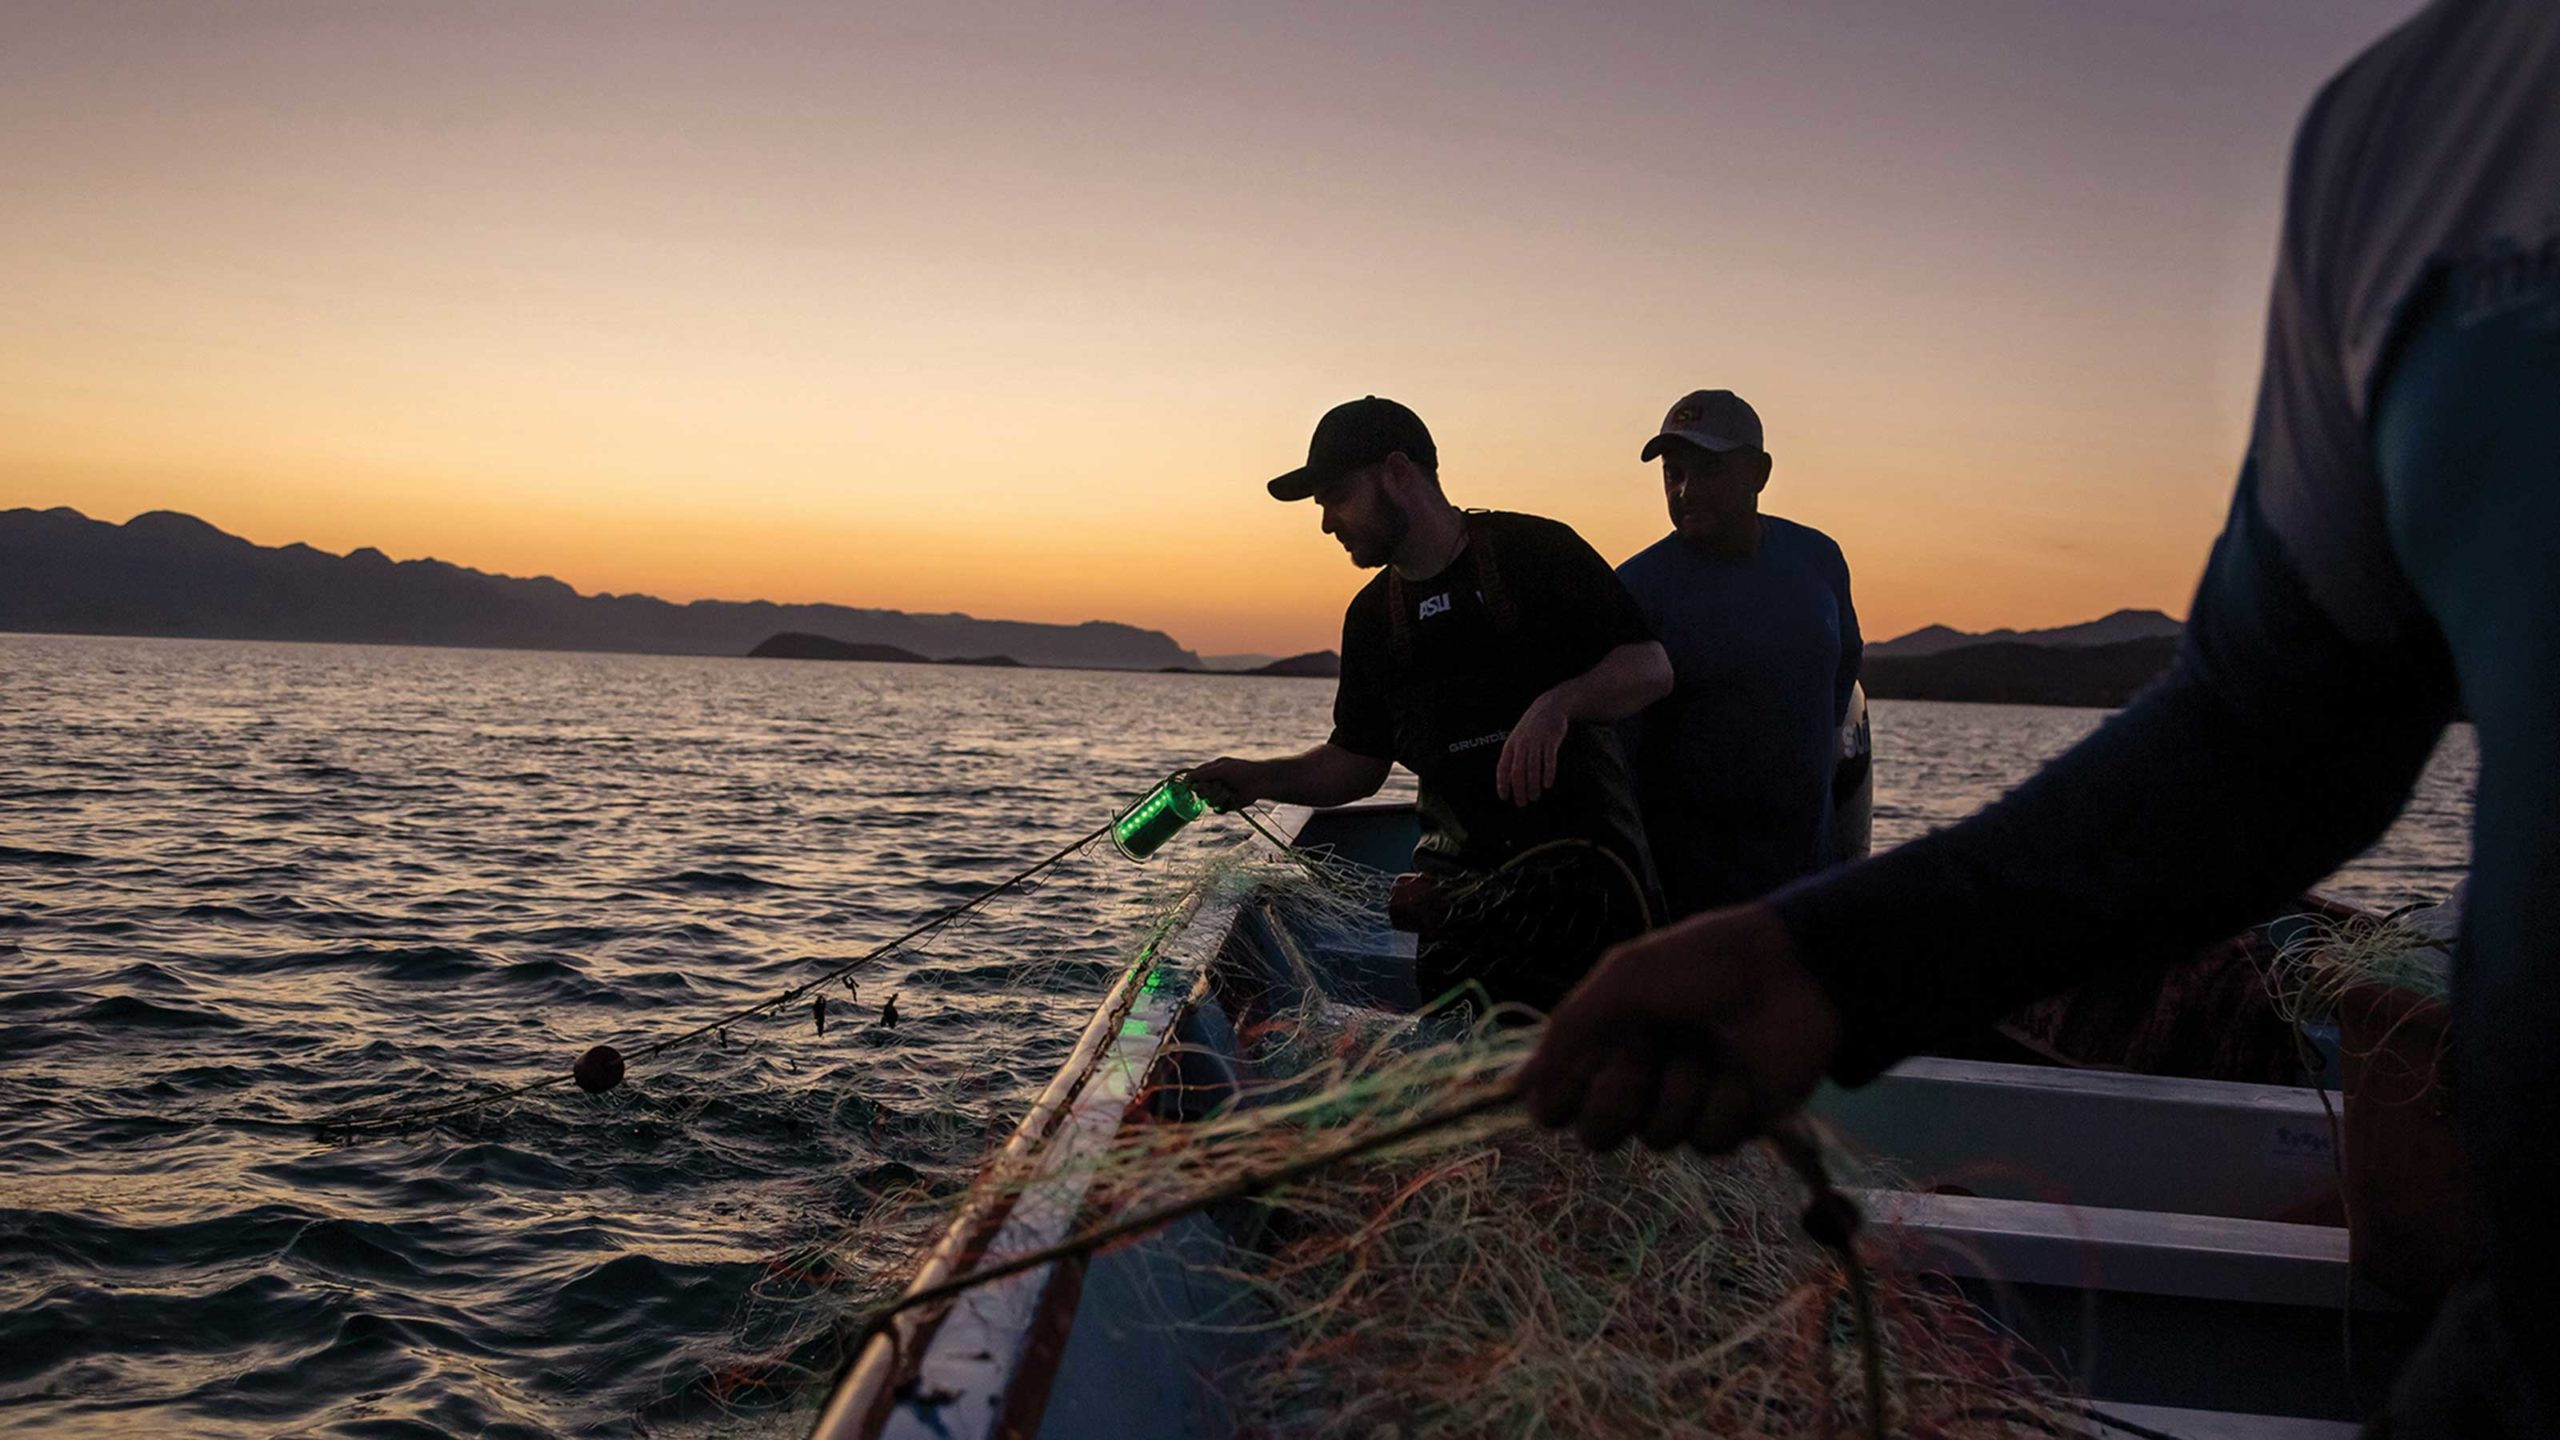 ASU researchers in a boat lower lighted fishing nets into the water at sunset